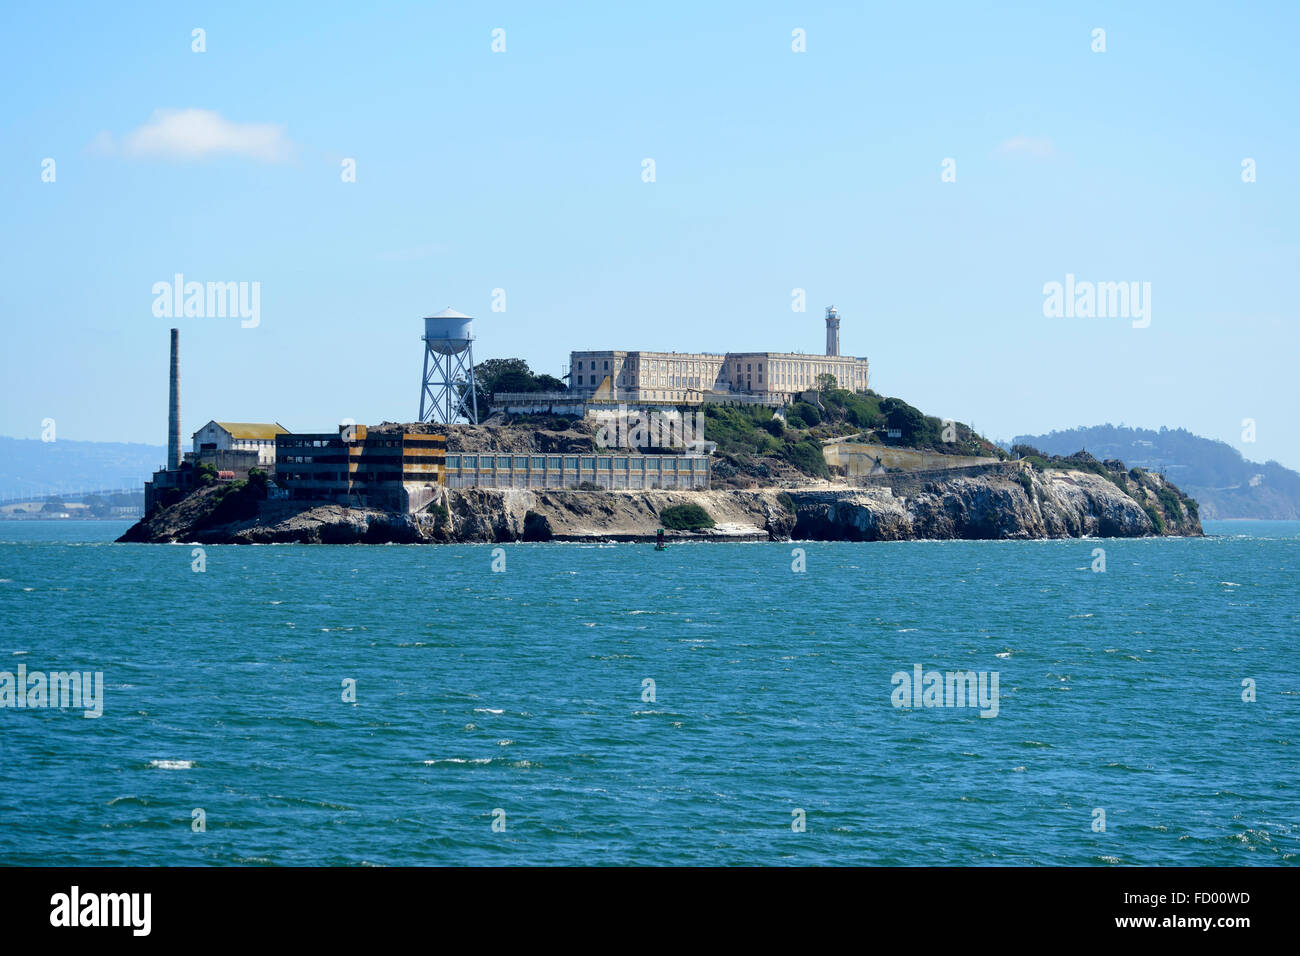 View of Alcatraz Island from Sausalito Ferry, San Francisco, California, USA - Stock Image